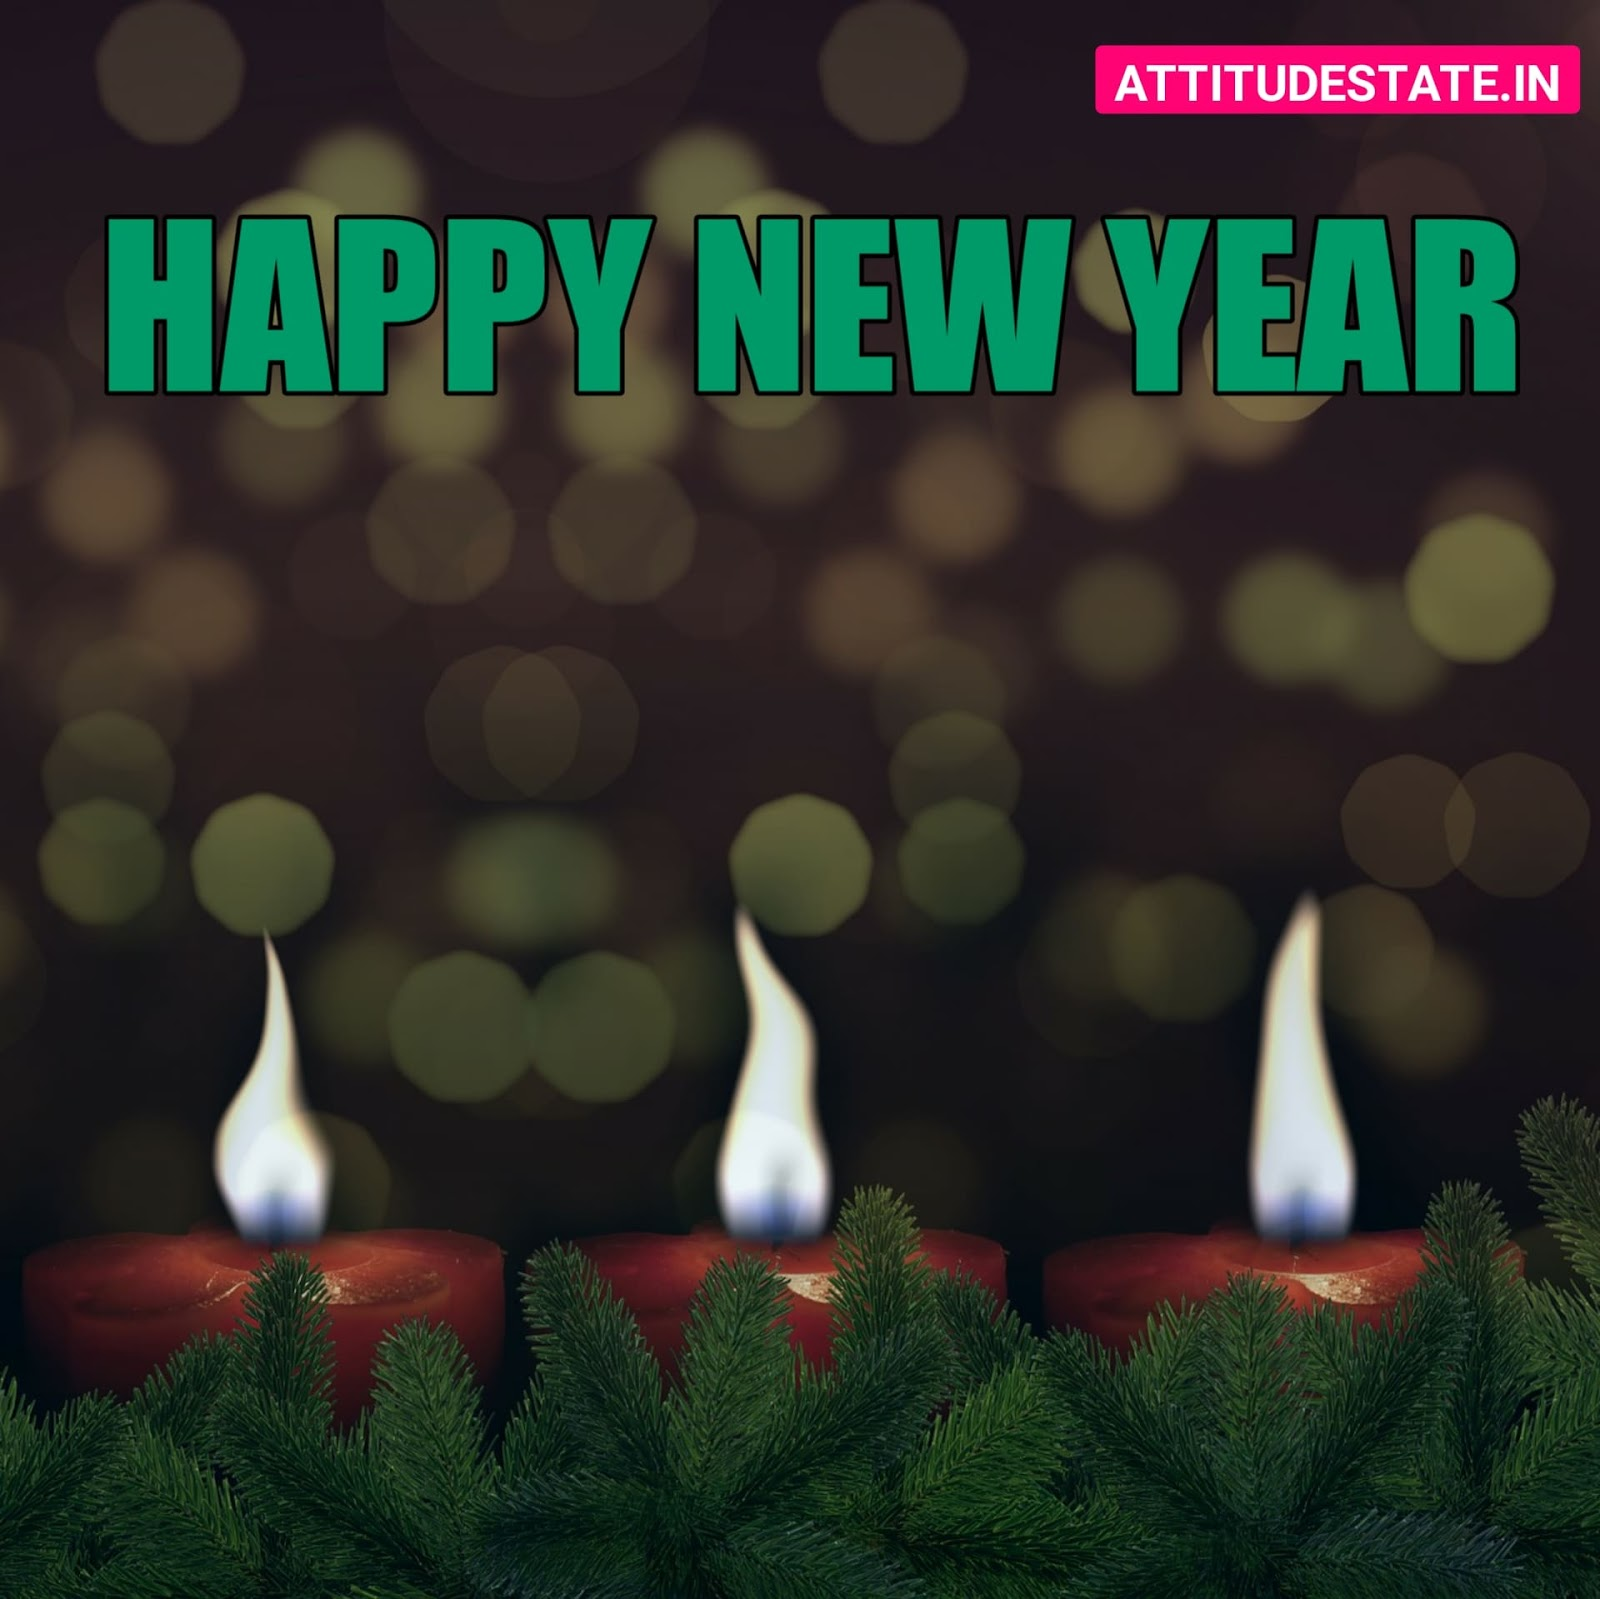 60 Happy New Year 2021 Images Photo Wishes Wallpapers Download Free Best Shayari Status Quotes In Hindi 2021